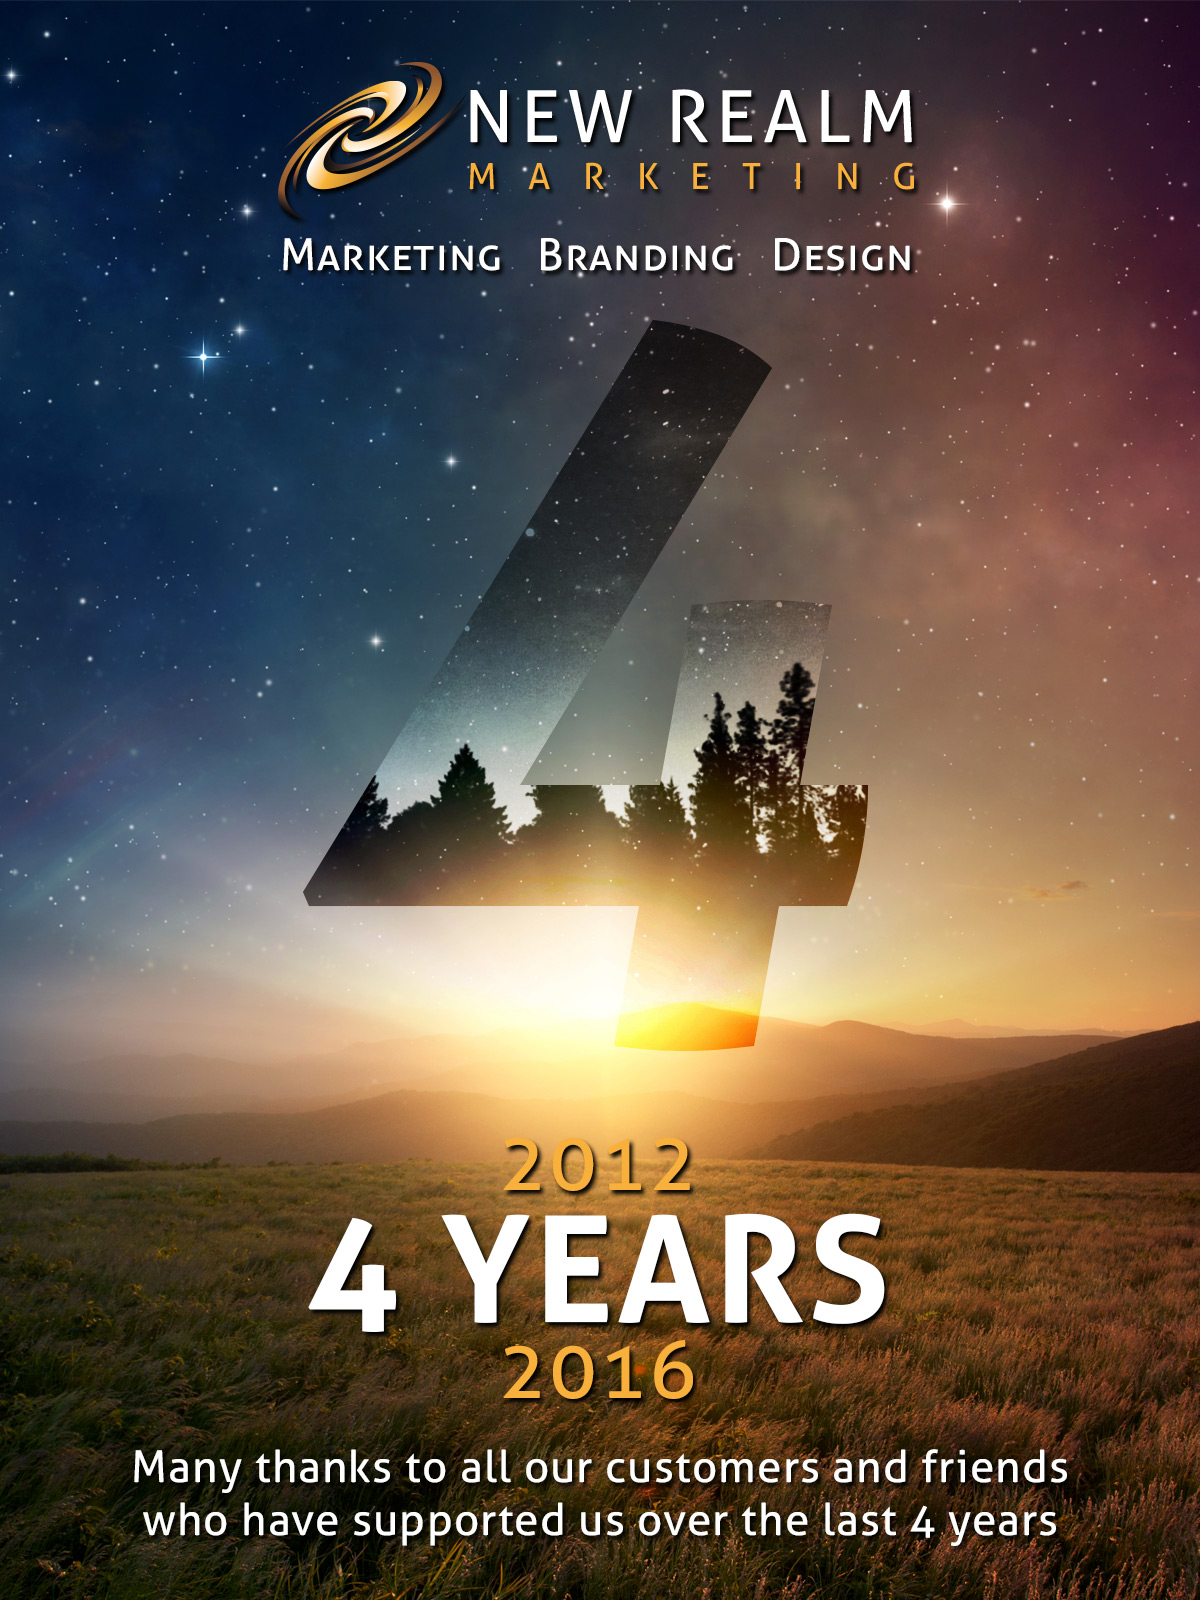 New Realm Marketing 4 years mailchimp